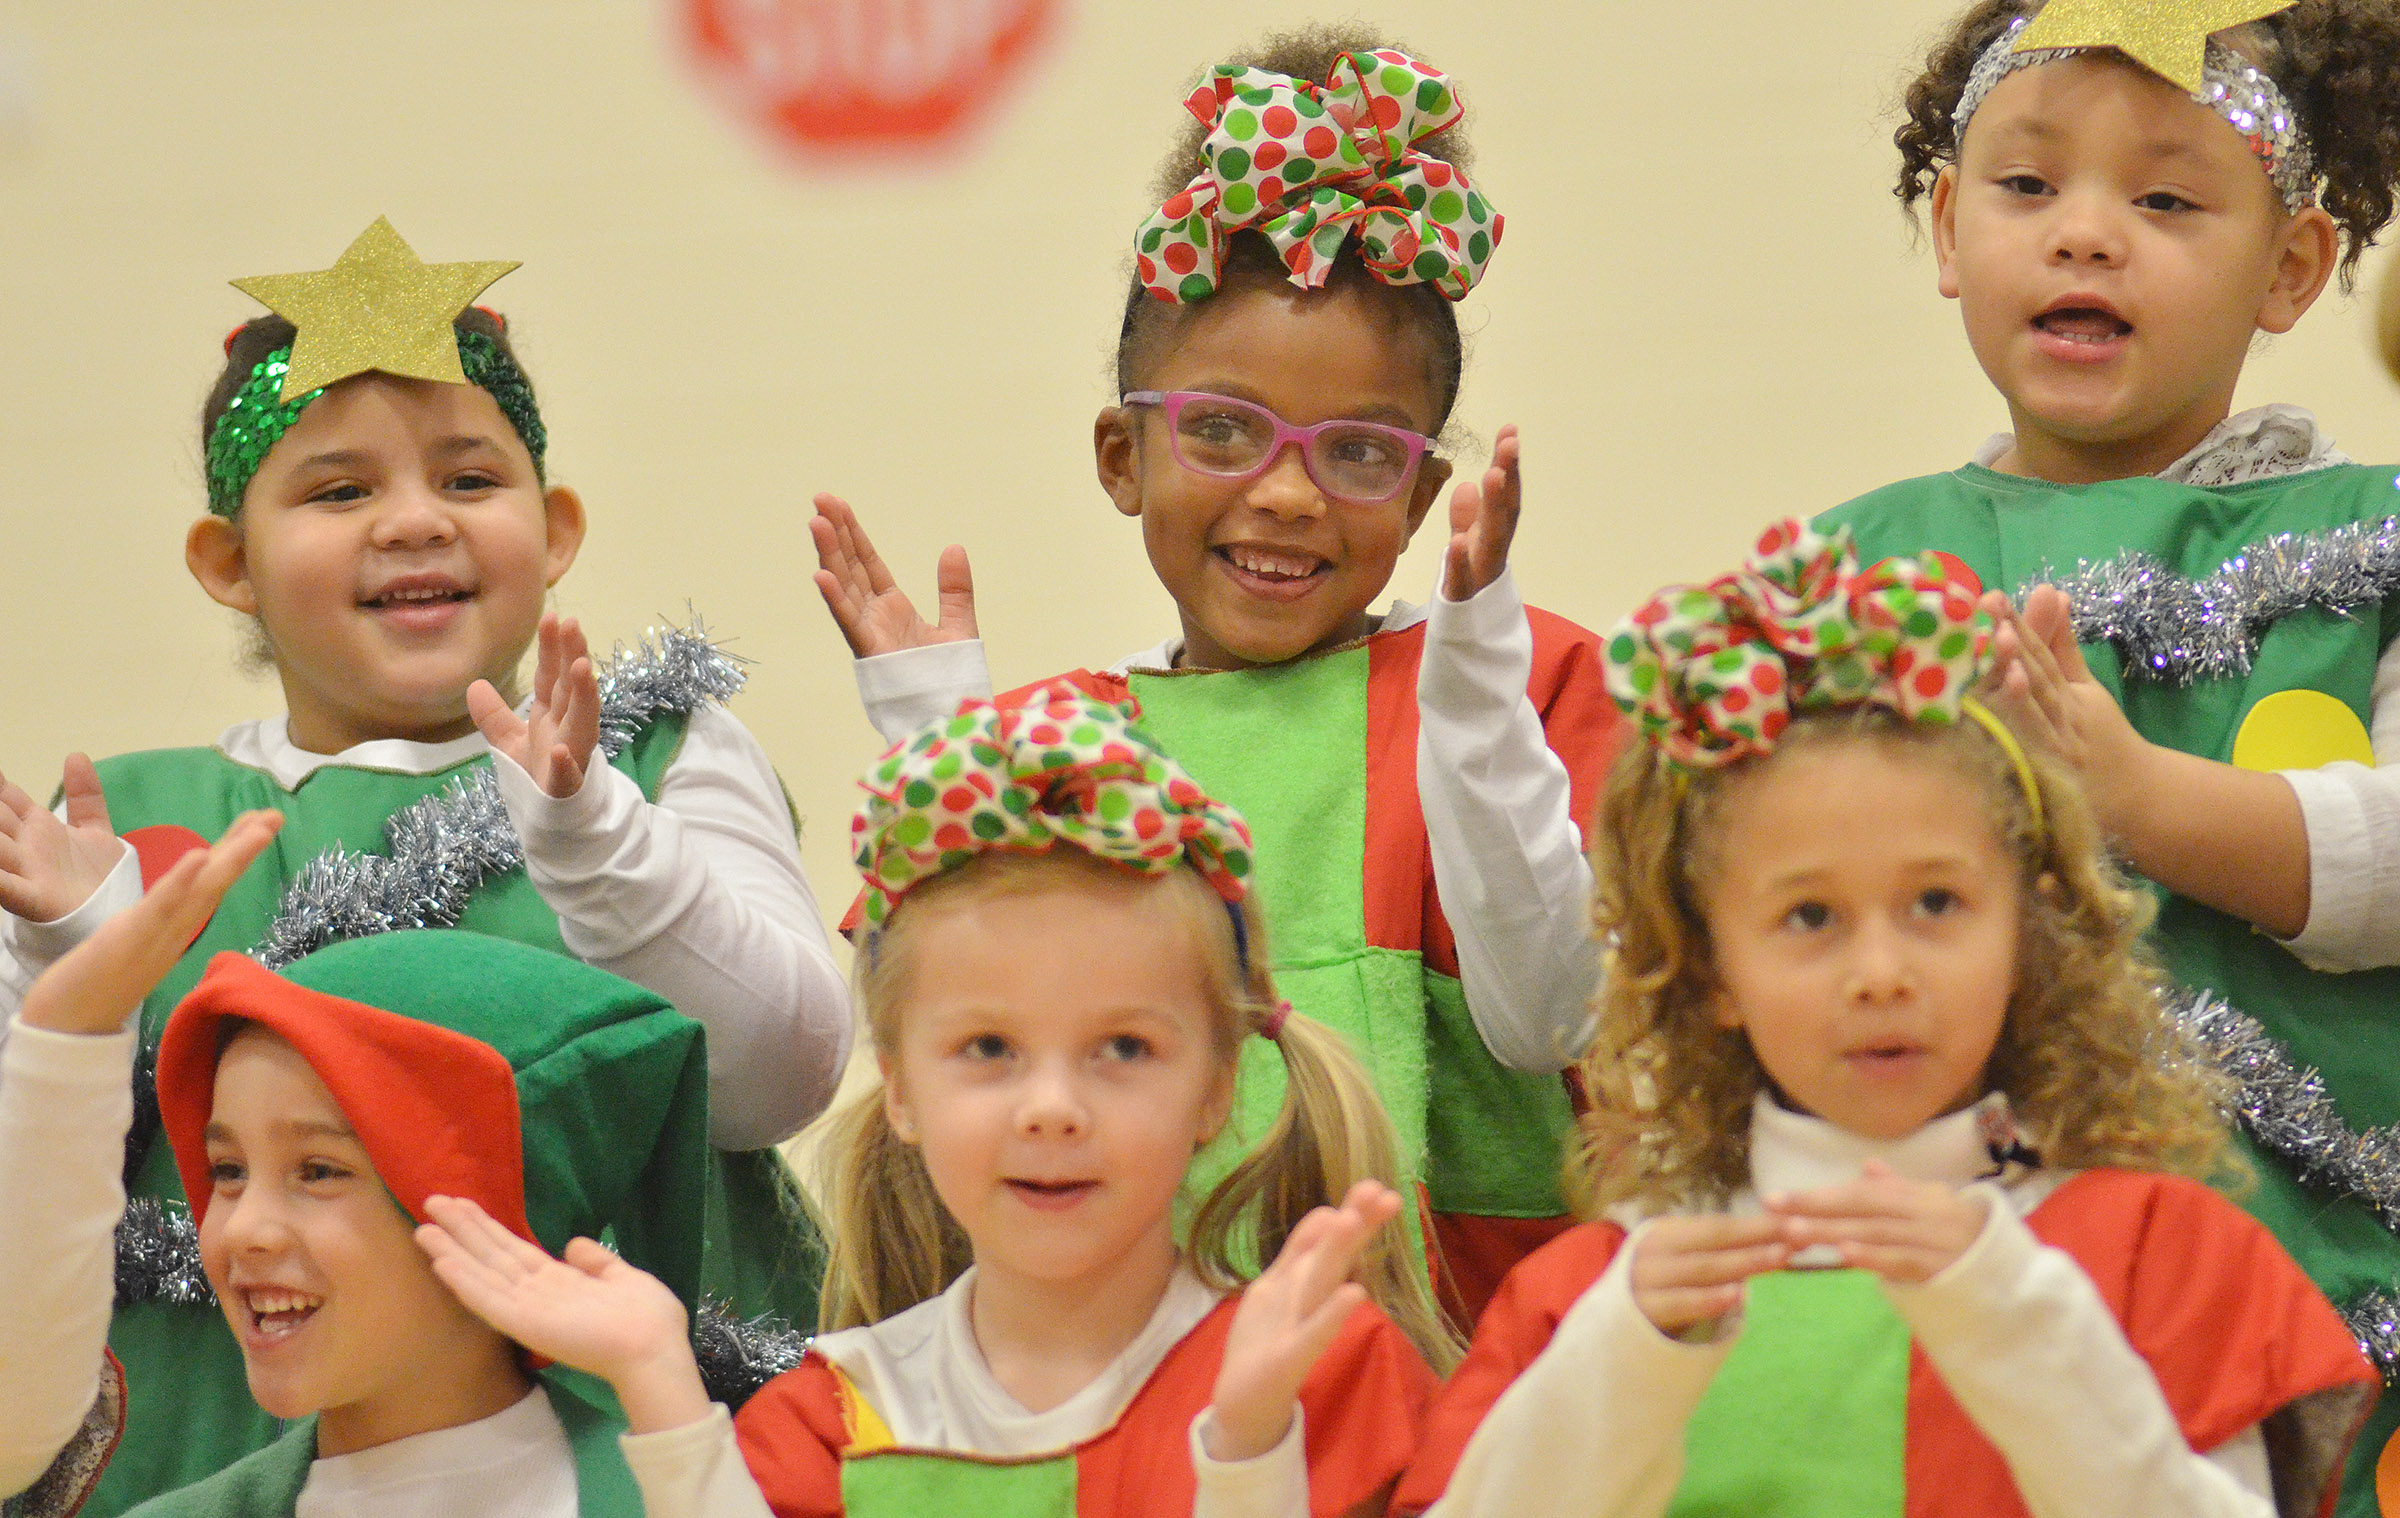 CES kindergarteners smile as they sing a Christmas song. From left, front, are Dane Gray, Trinidy Gribbins and Fallyn Smith. Back, Tatum Hoskins, Daya Griffin and Lillian Merriweather.